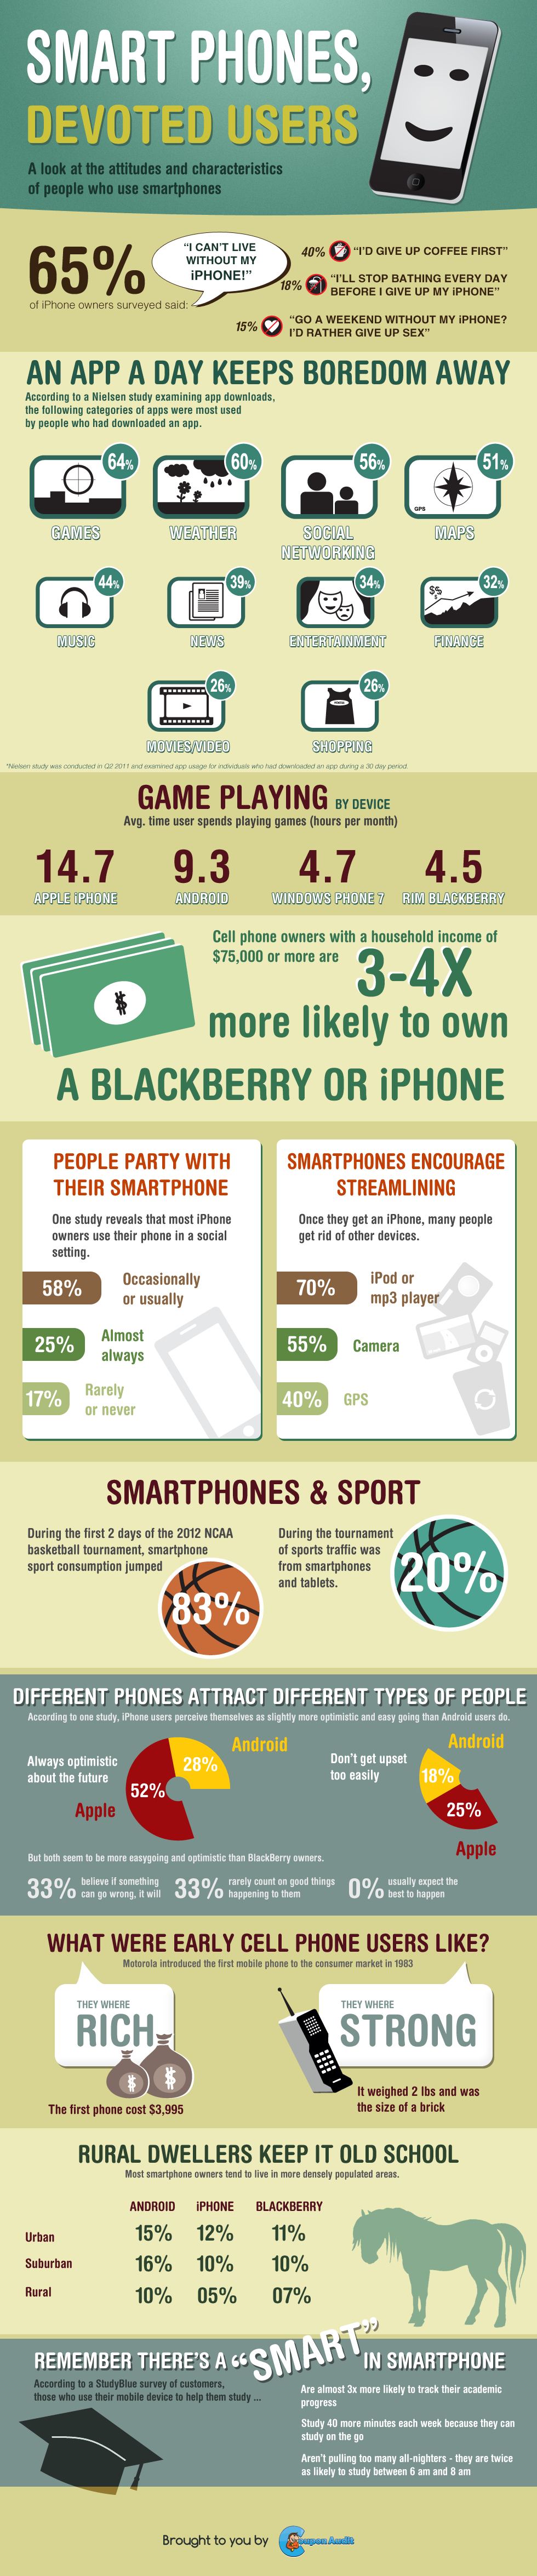 Smart Phone, Devoted Users!